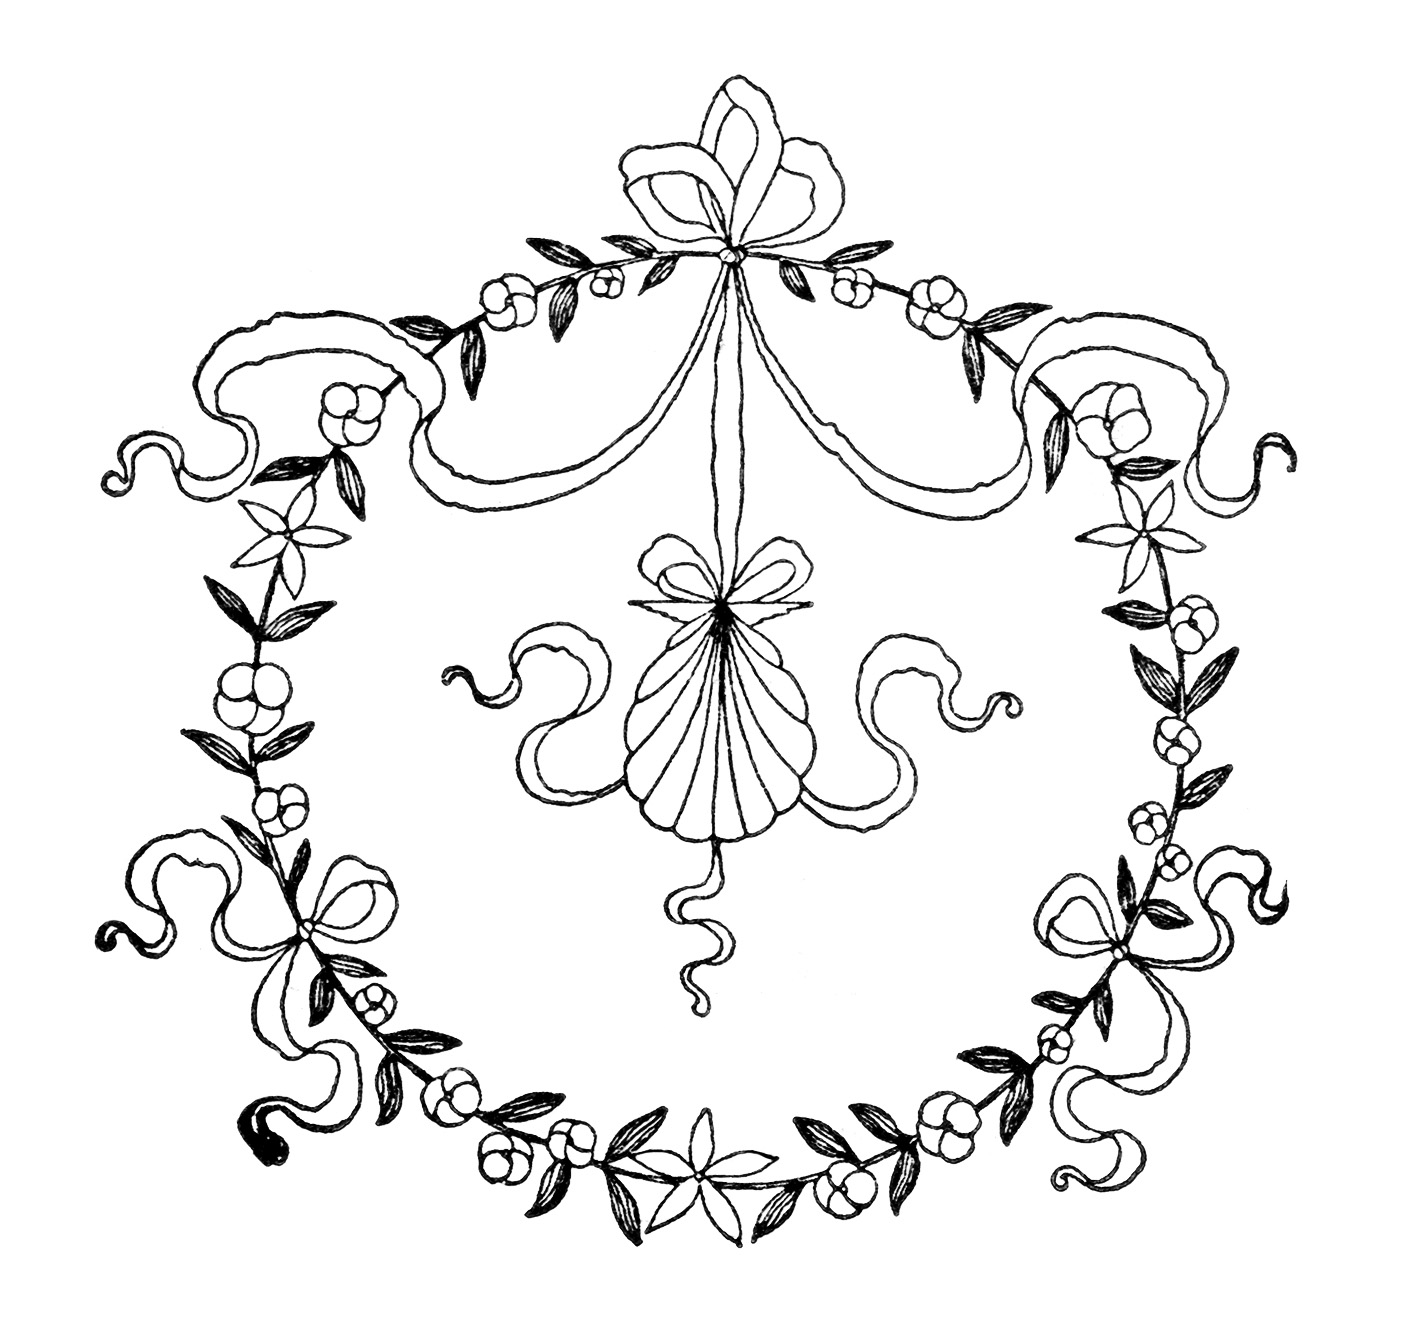 Free clipart vintage embroidery designs old design